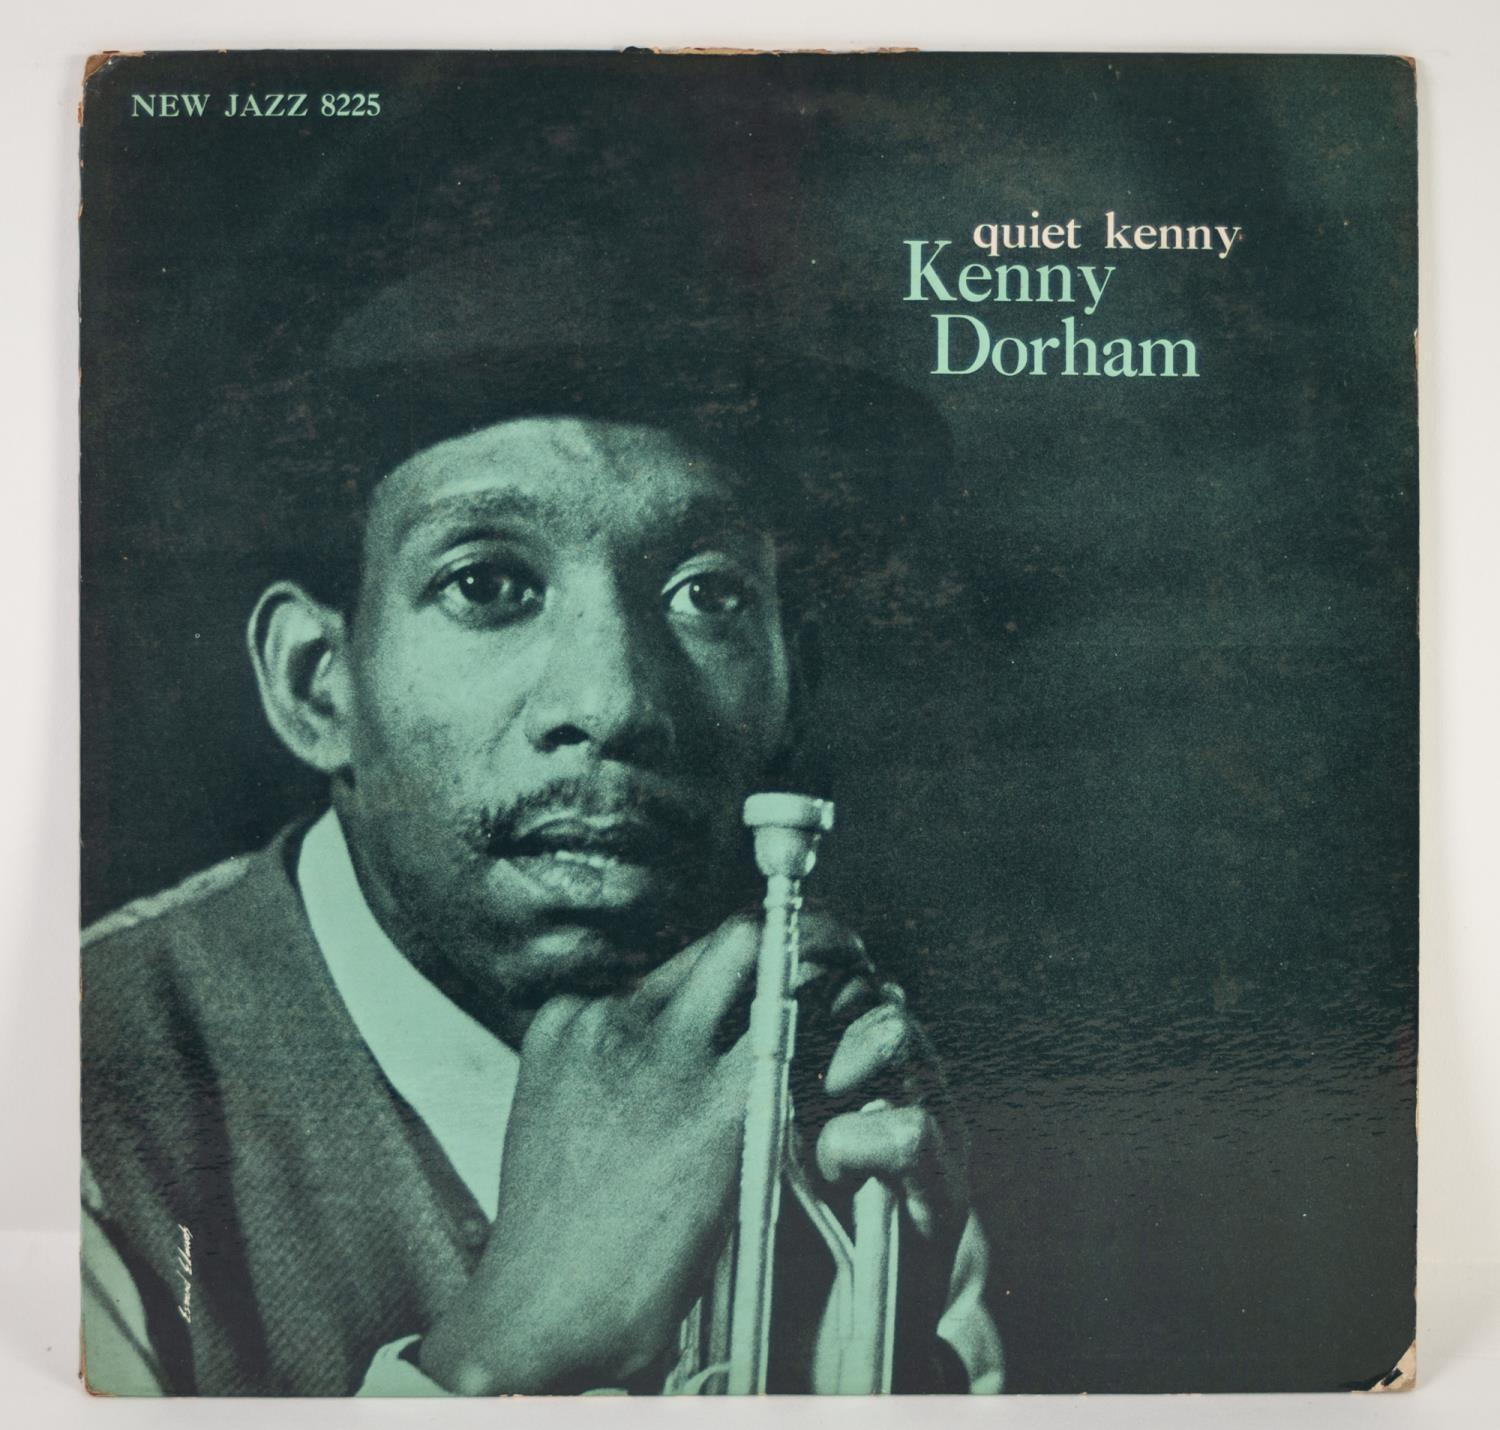 JAZZ, VINYL RECORDS- D IS FOR KENNY DORHAM-QUIET KENNY, NEW JAZZ (NJLP 8225). Original US pressing